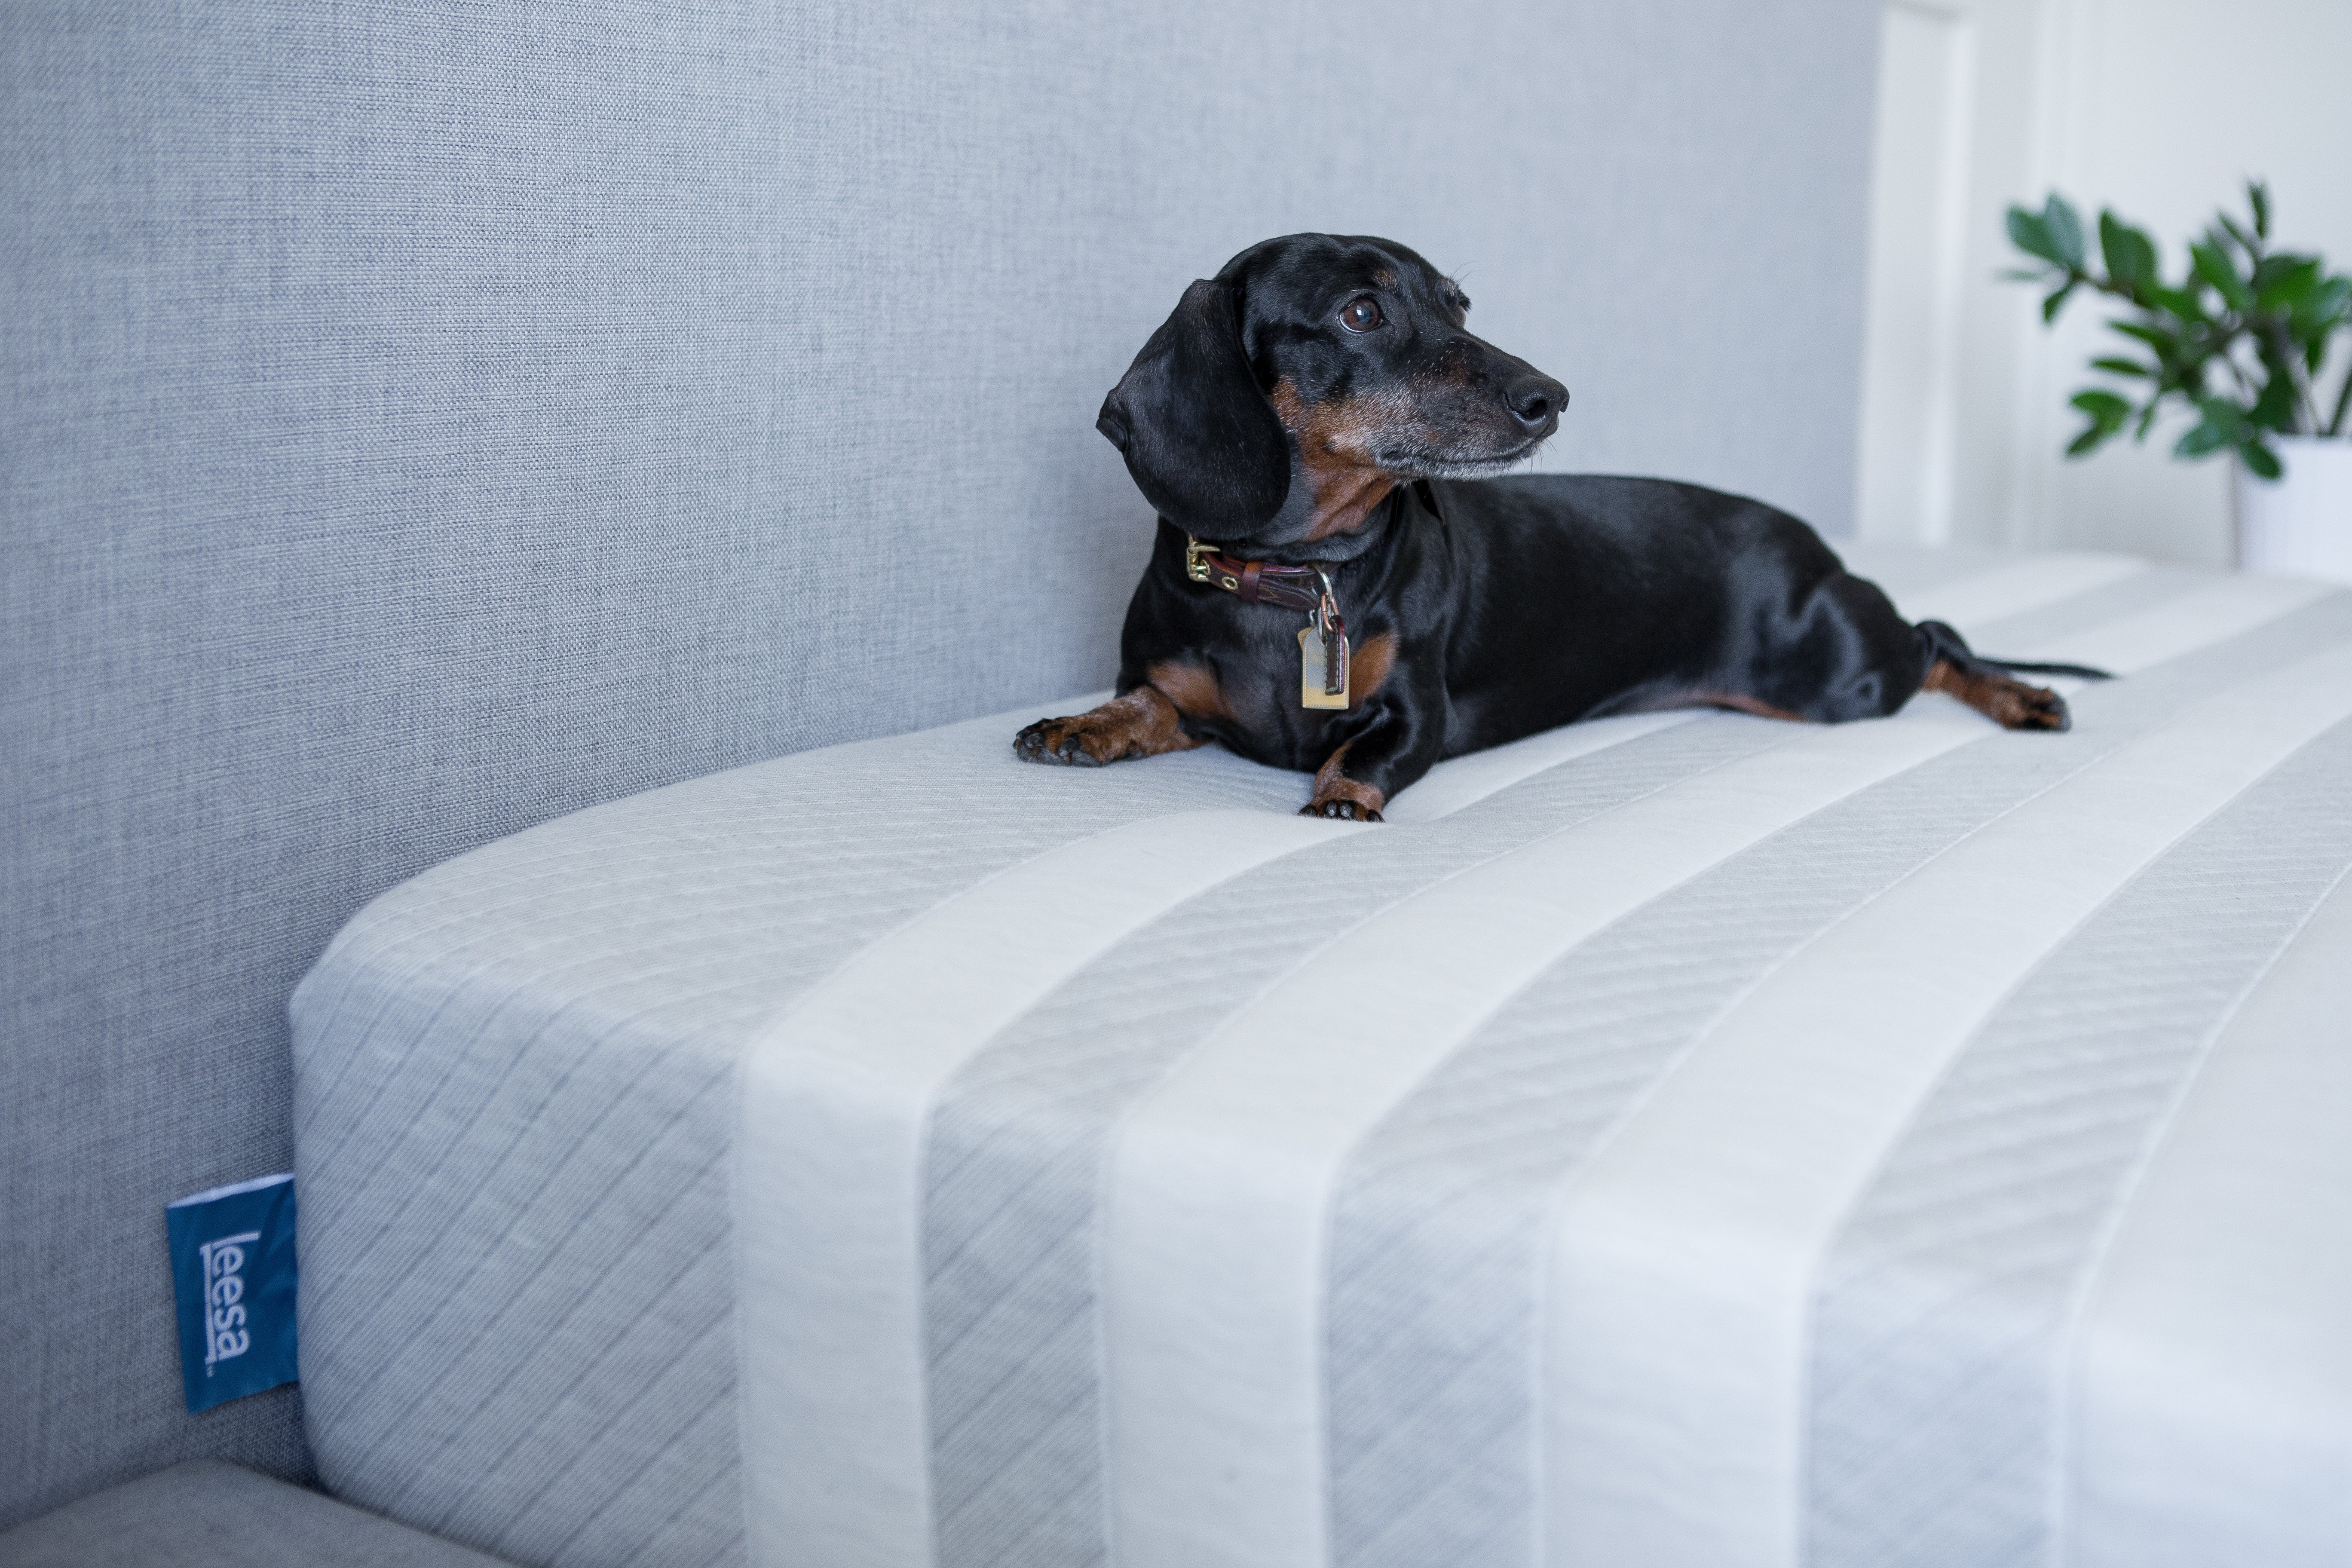 Dog on a Leesa mattress